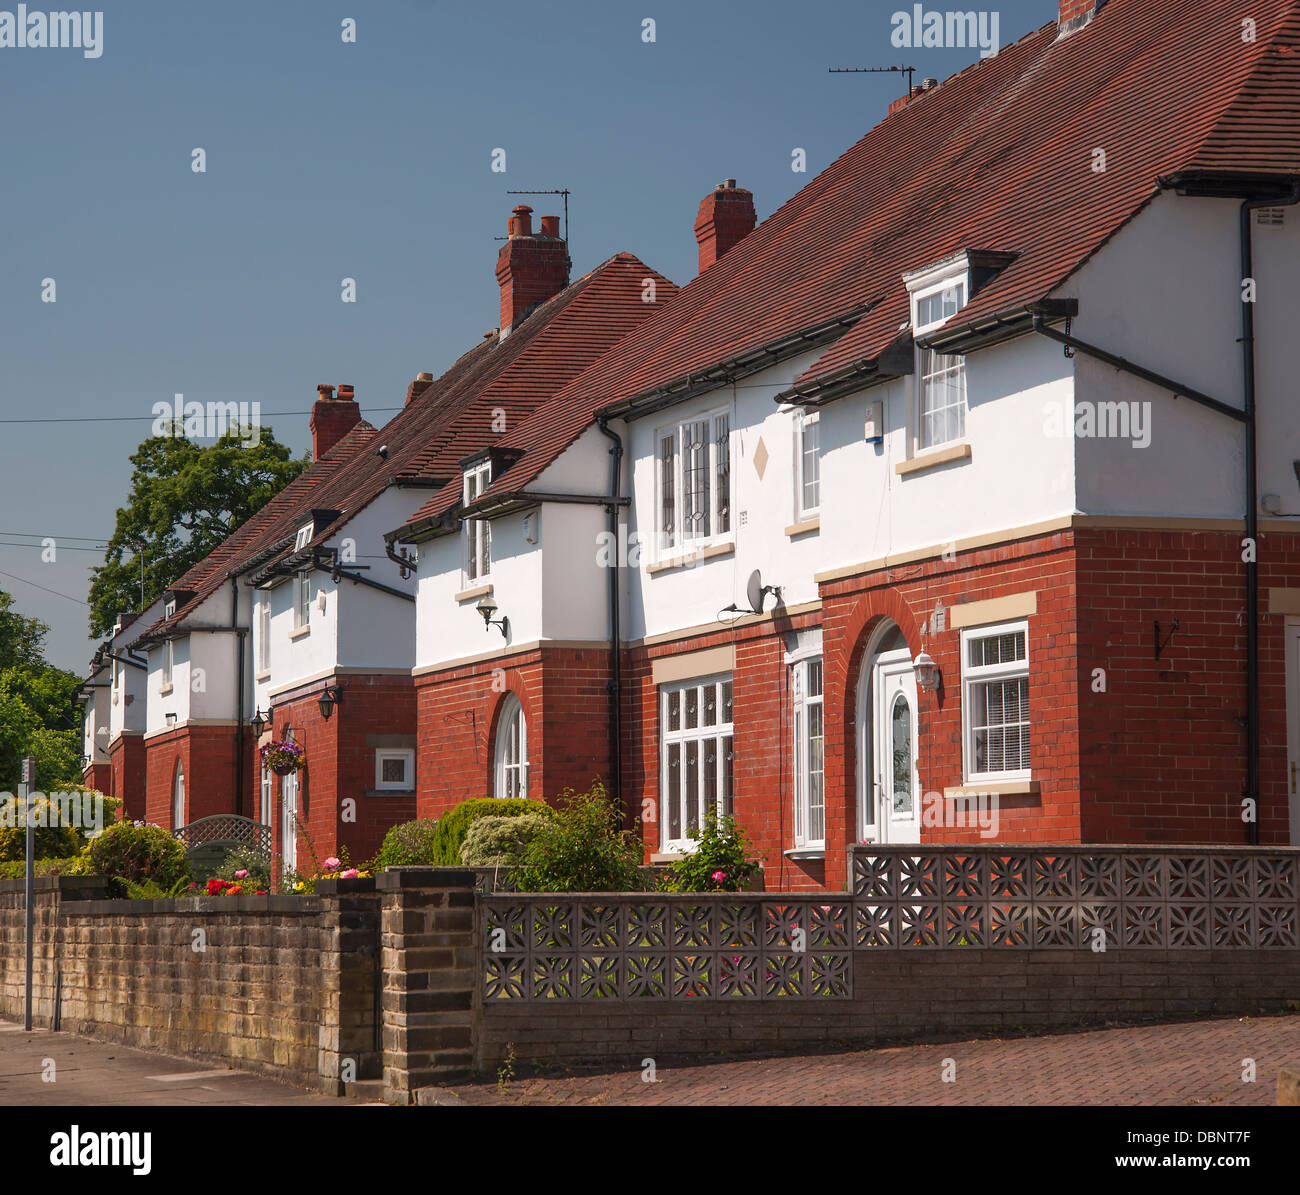 brick and render middle class housing - Stock Image